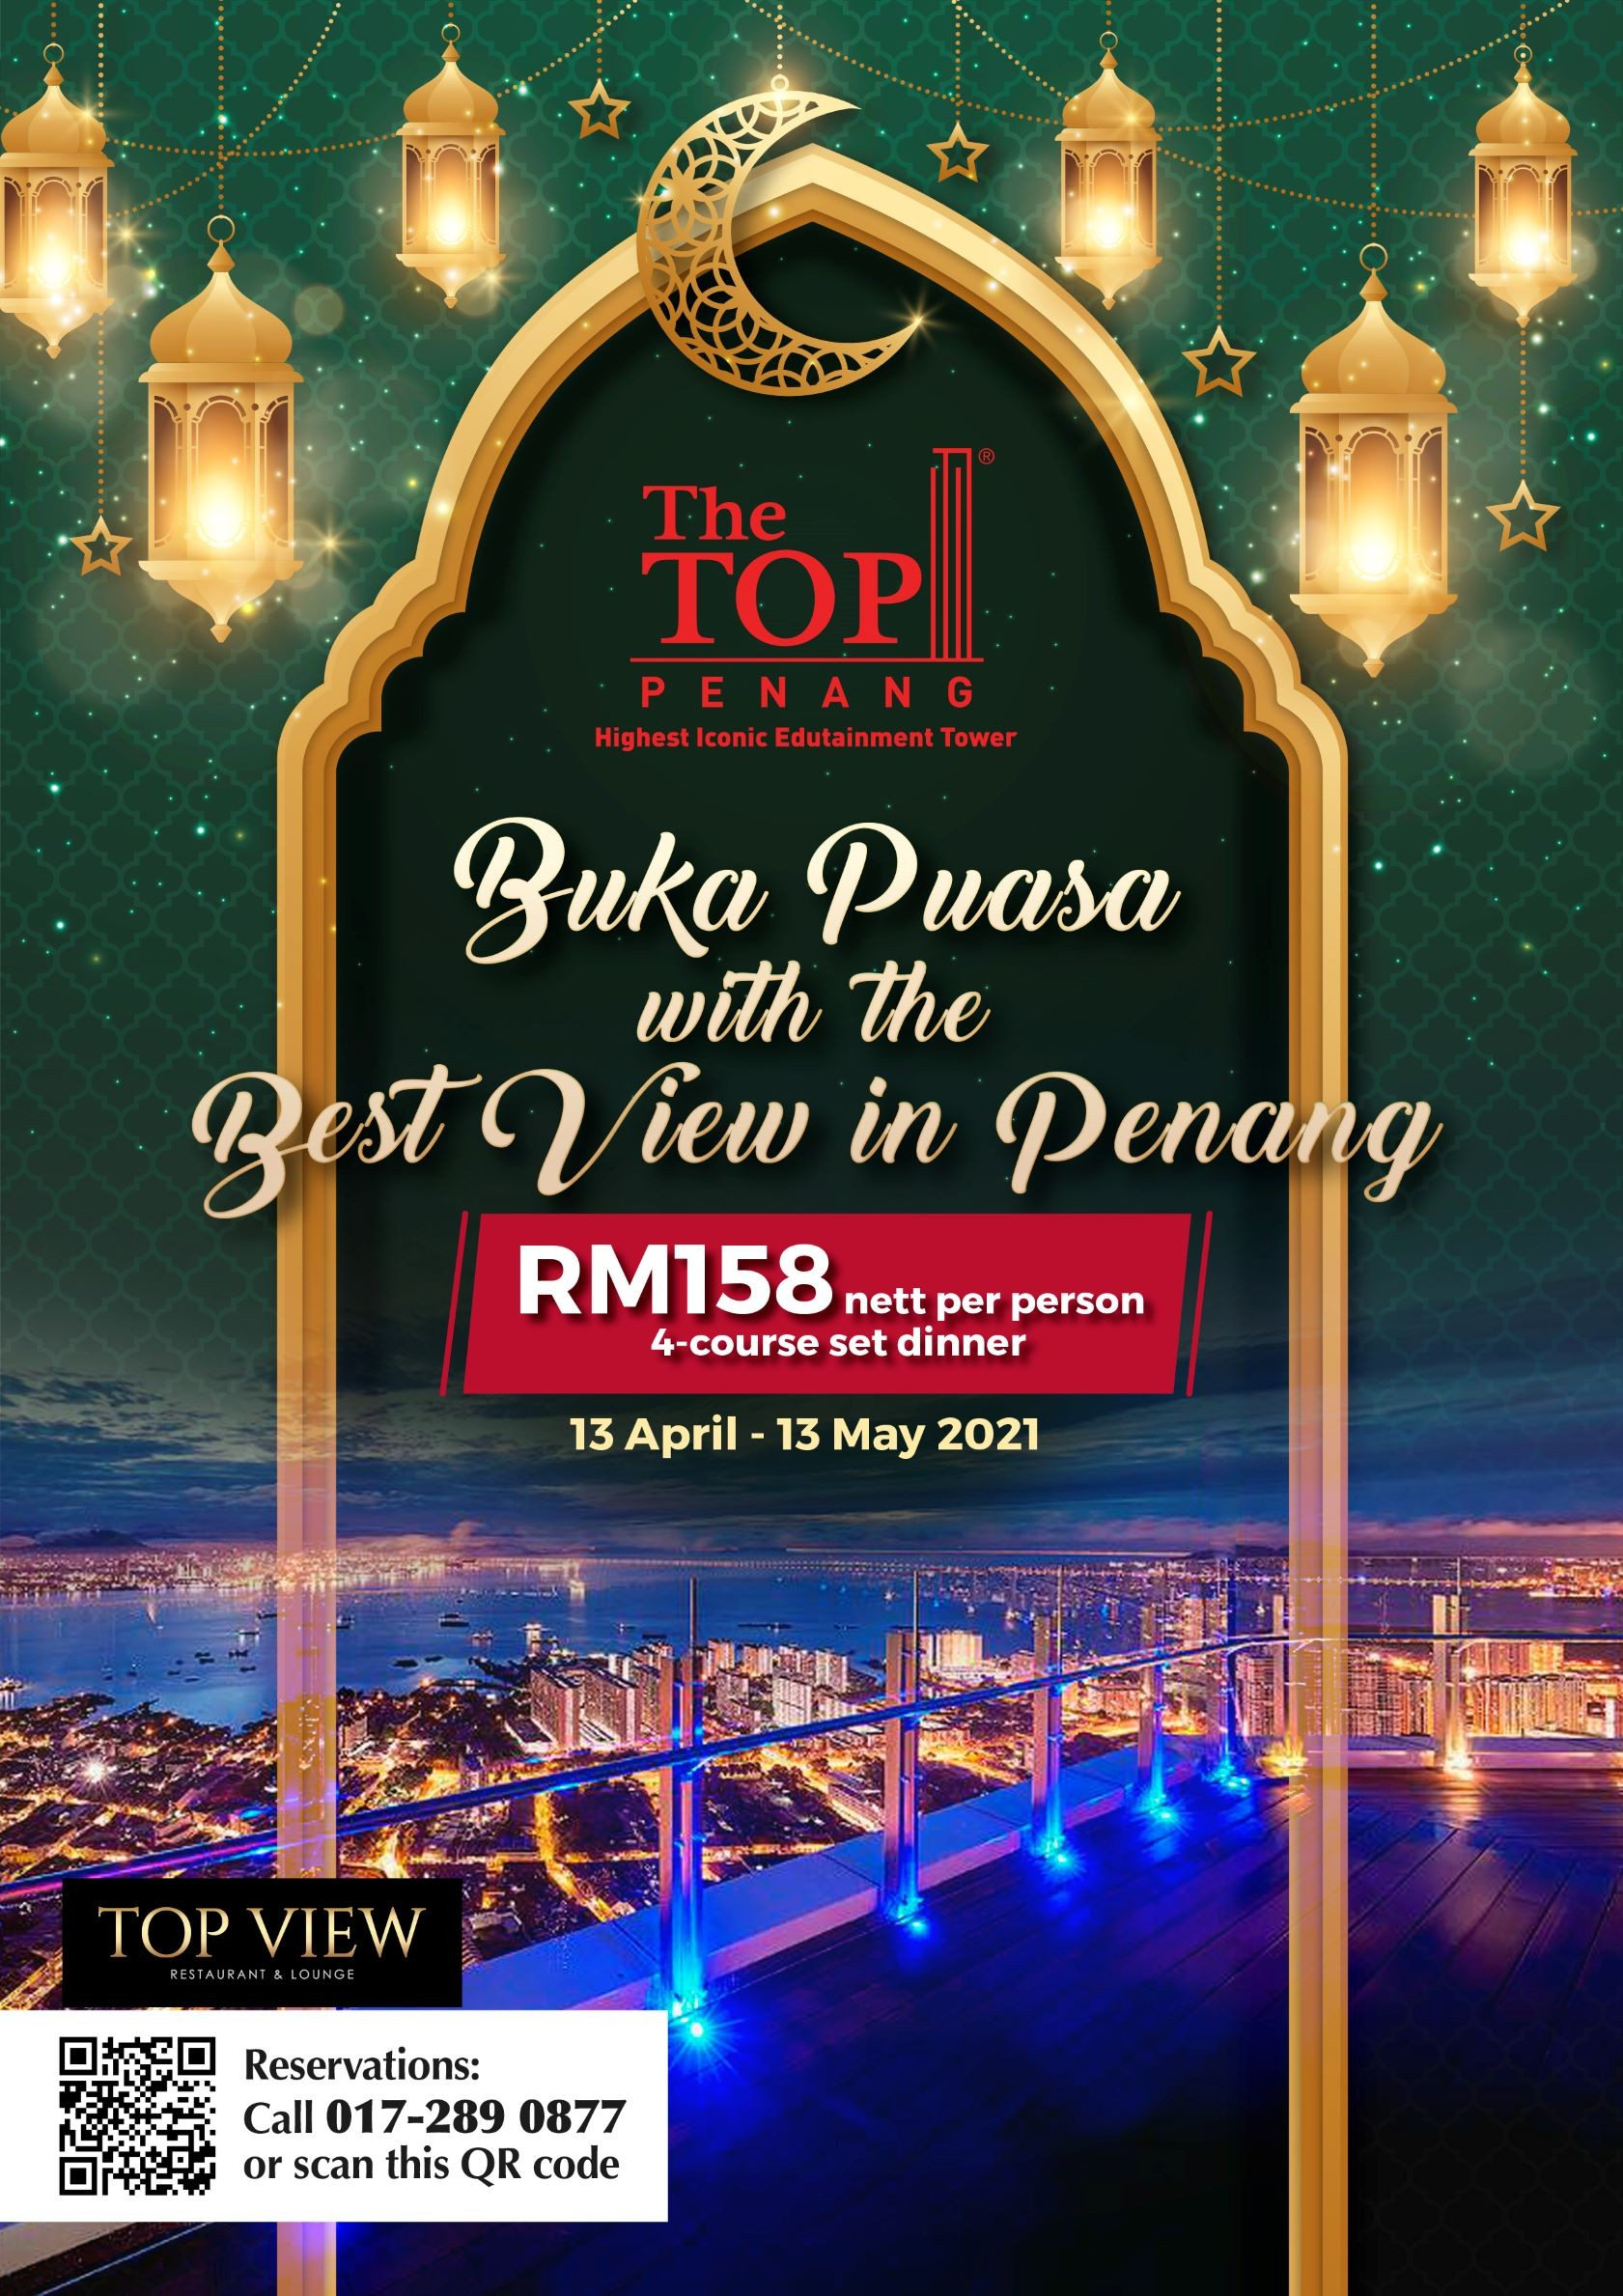 Buka Puasa with The Best View in Penang  The Top Penang